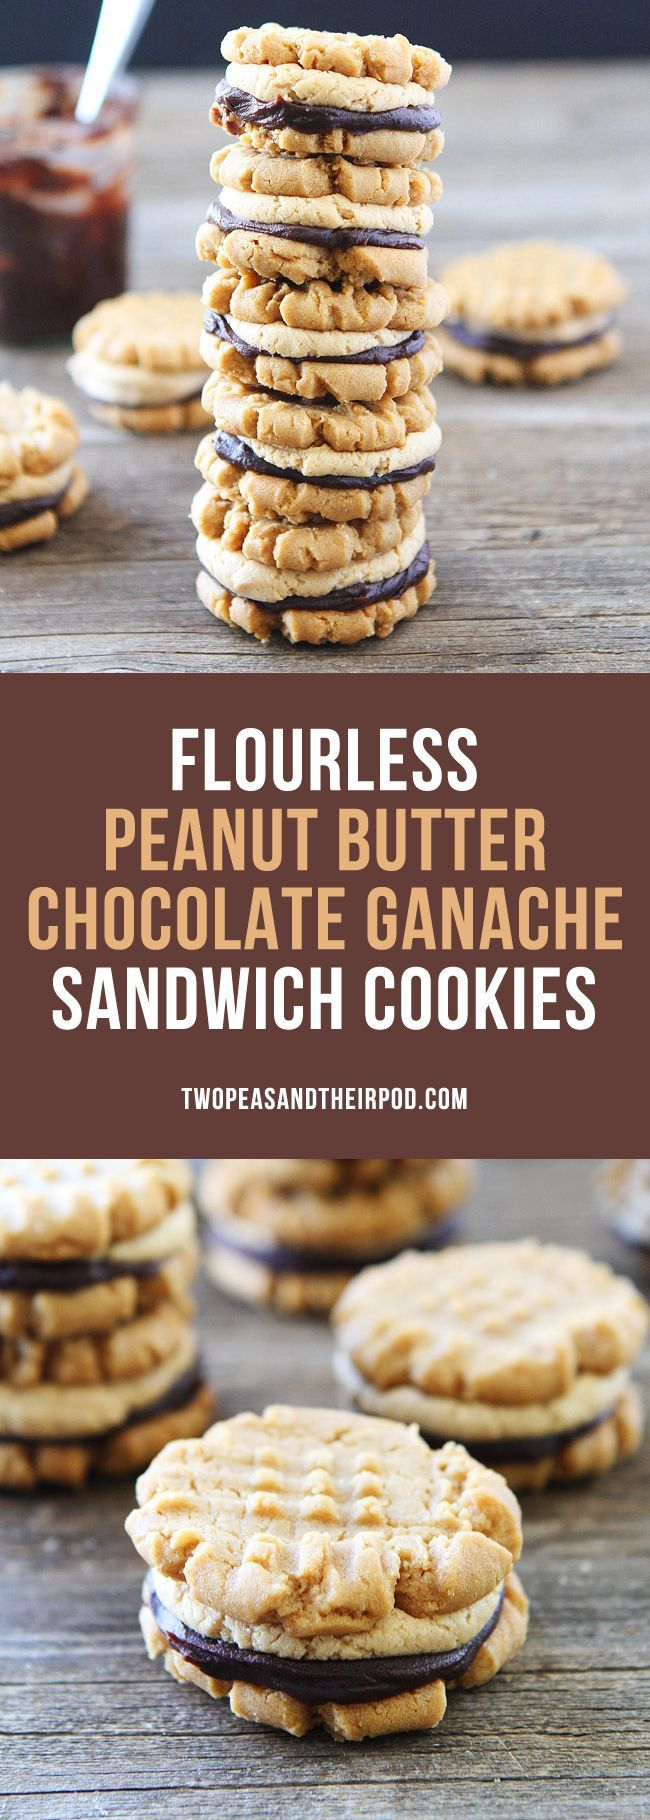 Flourless Peanut Butter Chocolate Ganache Sandwich Cookies You will never know these delicious peanut butter cookies are gluten-free! The peanut butter and chocolate combo is the BEST and two cookies are always better than one!